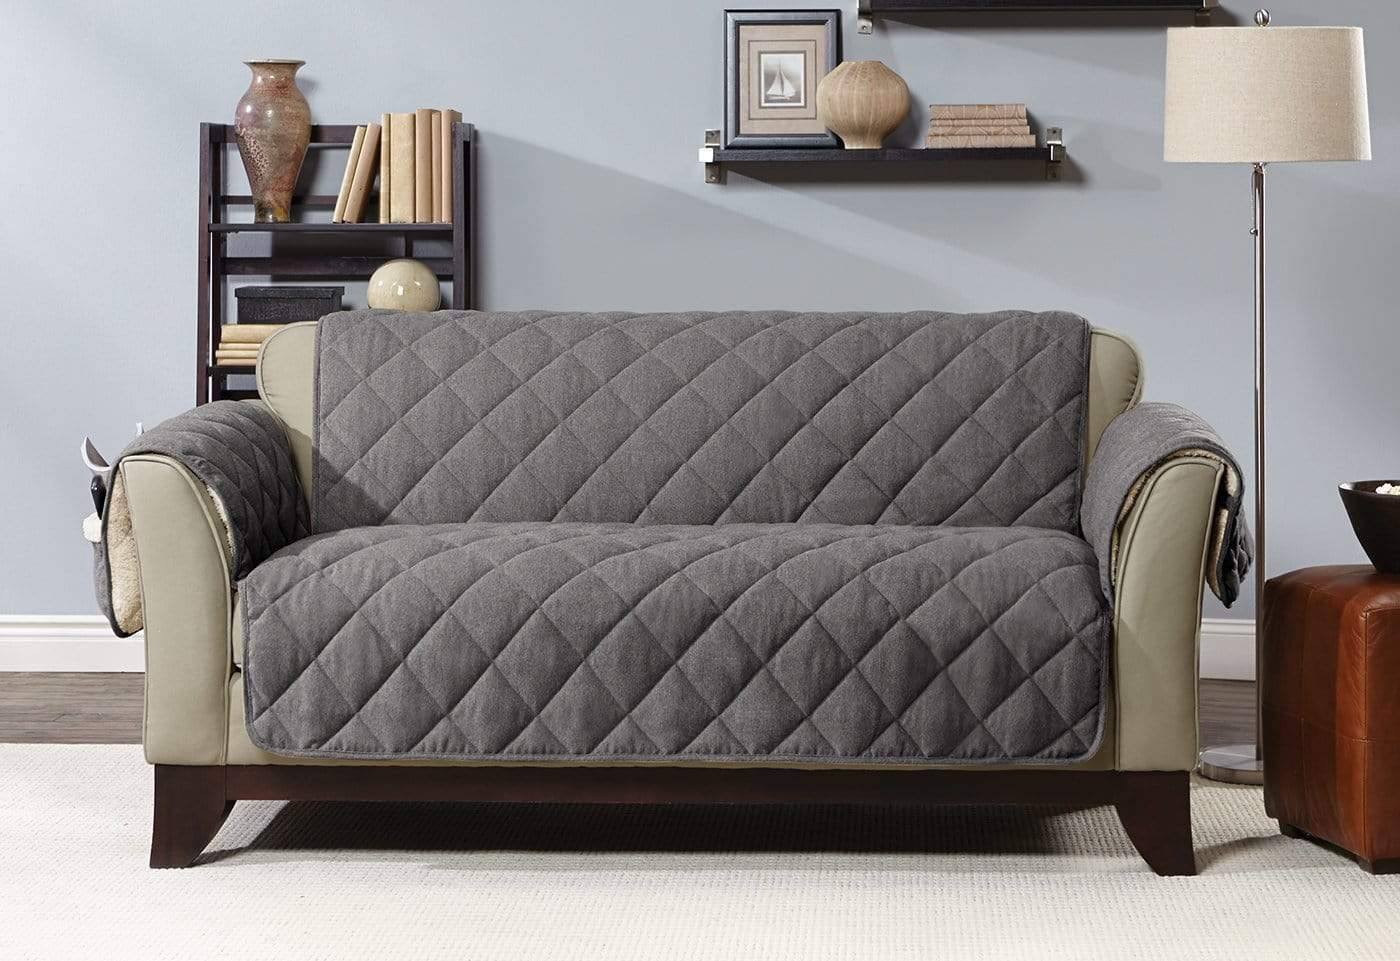 Flannel & Sherpa Loveseat Furniture Cover 100% Polyester Pet Furniture Cover Machine Washable - Loveseat / Gray